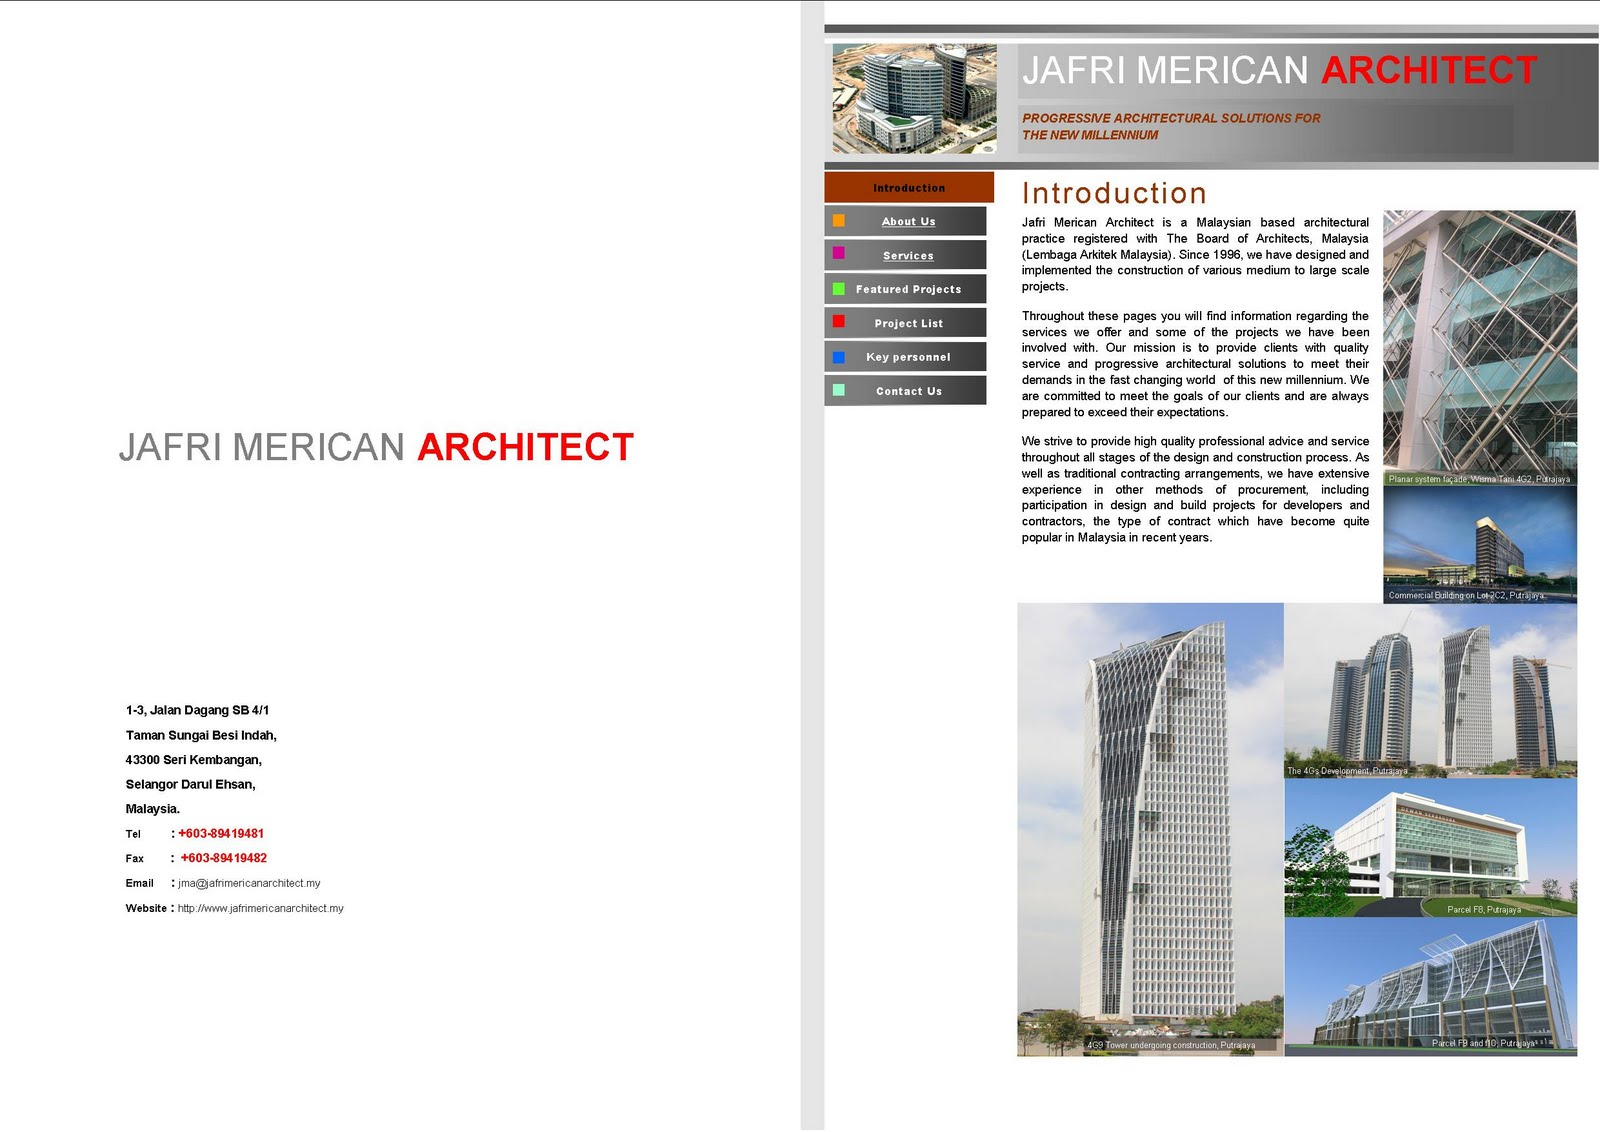 jafri merican architect cv introduction jafri merican architect is a n based architectural practice registered the board of architects lembaga arkitek